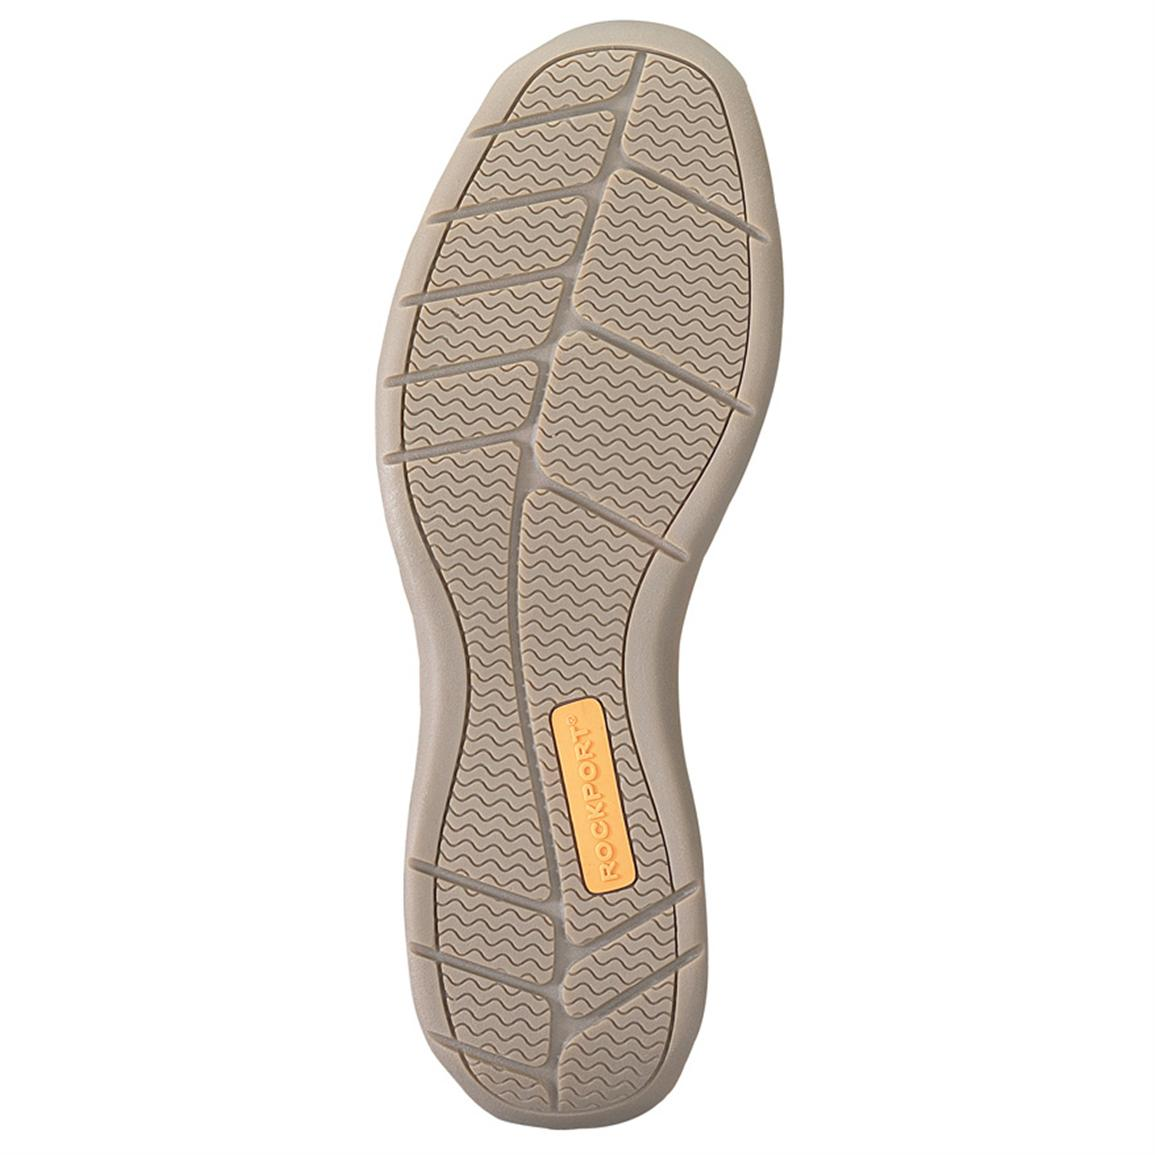 Rubber boat shoe outsole for traction wet or dry